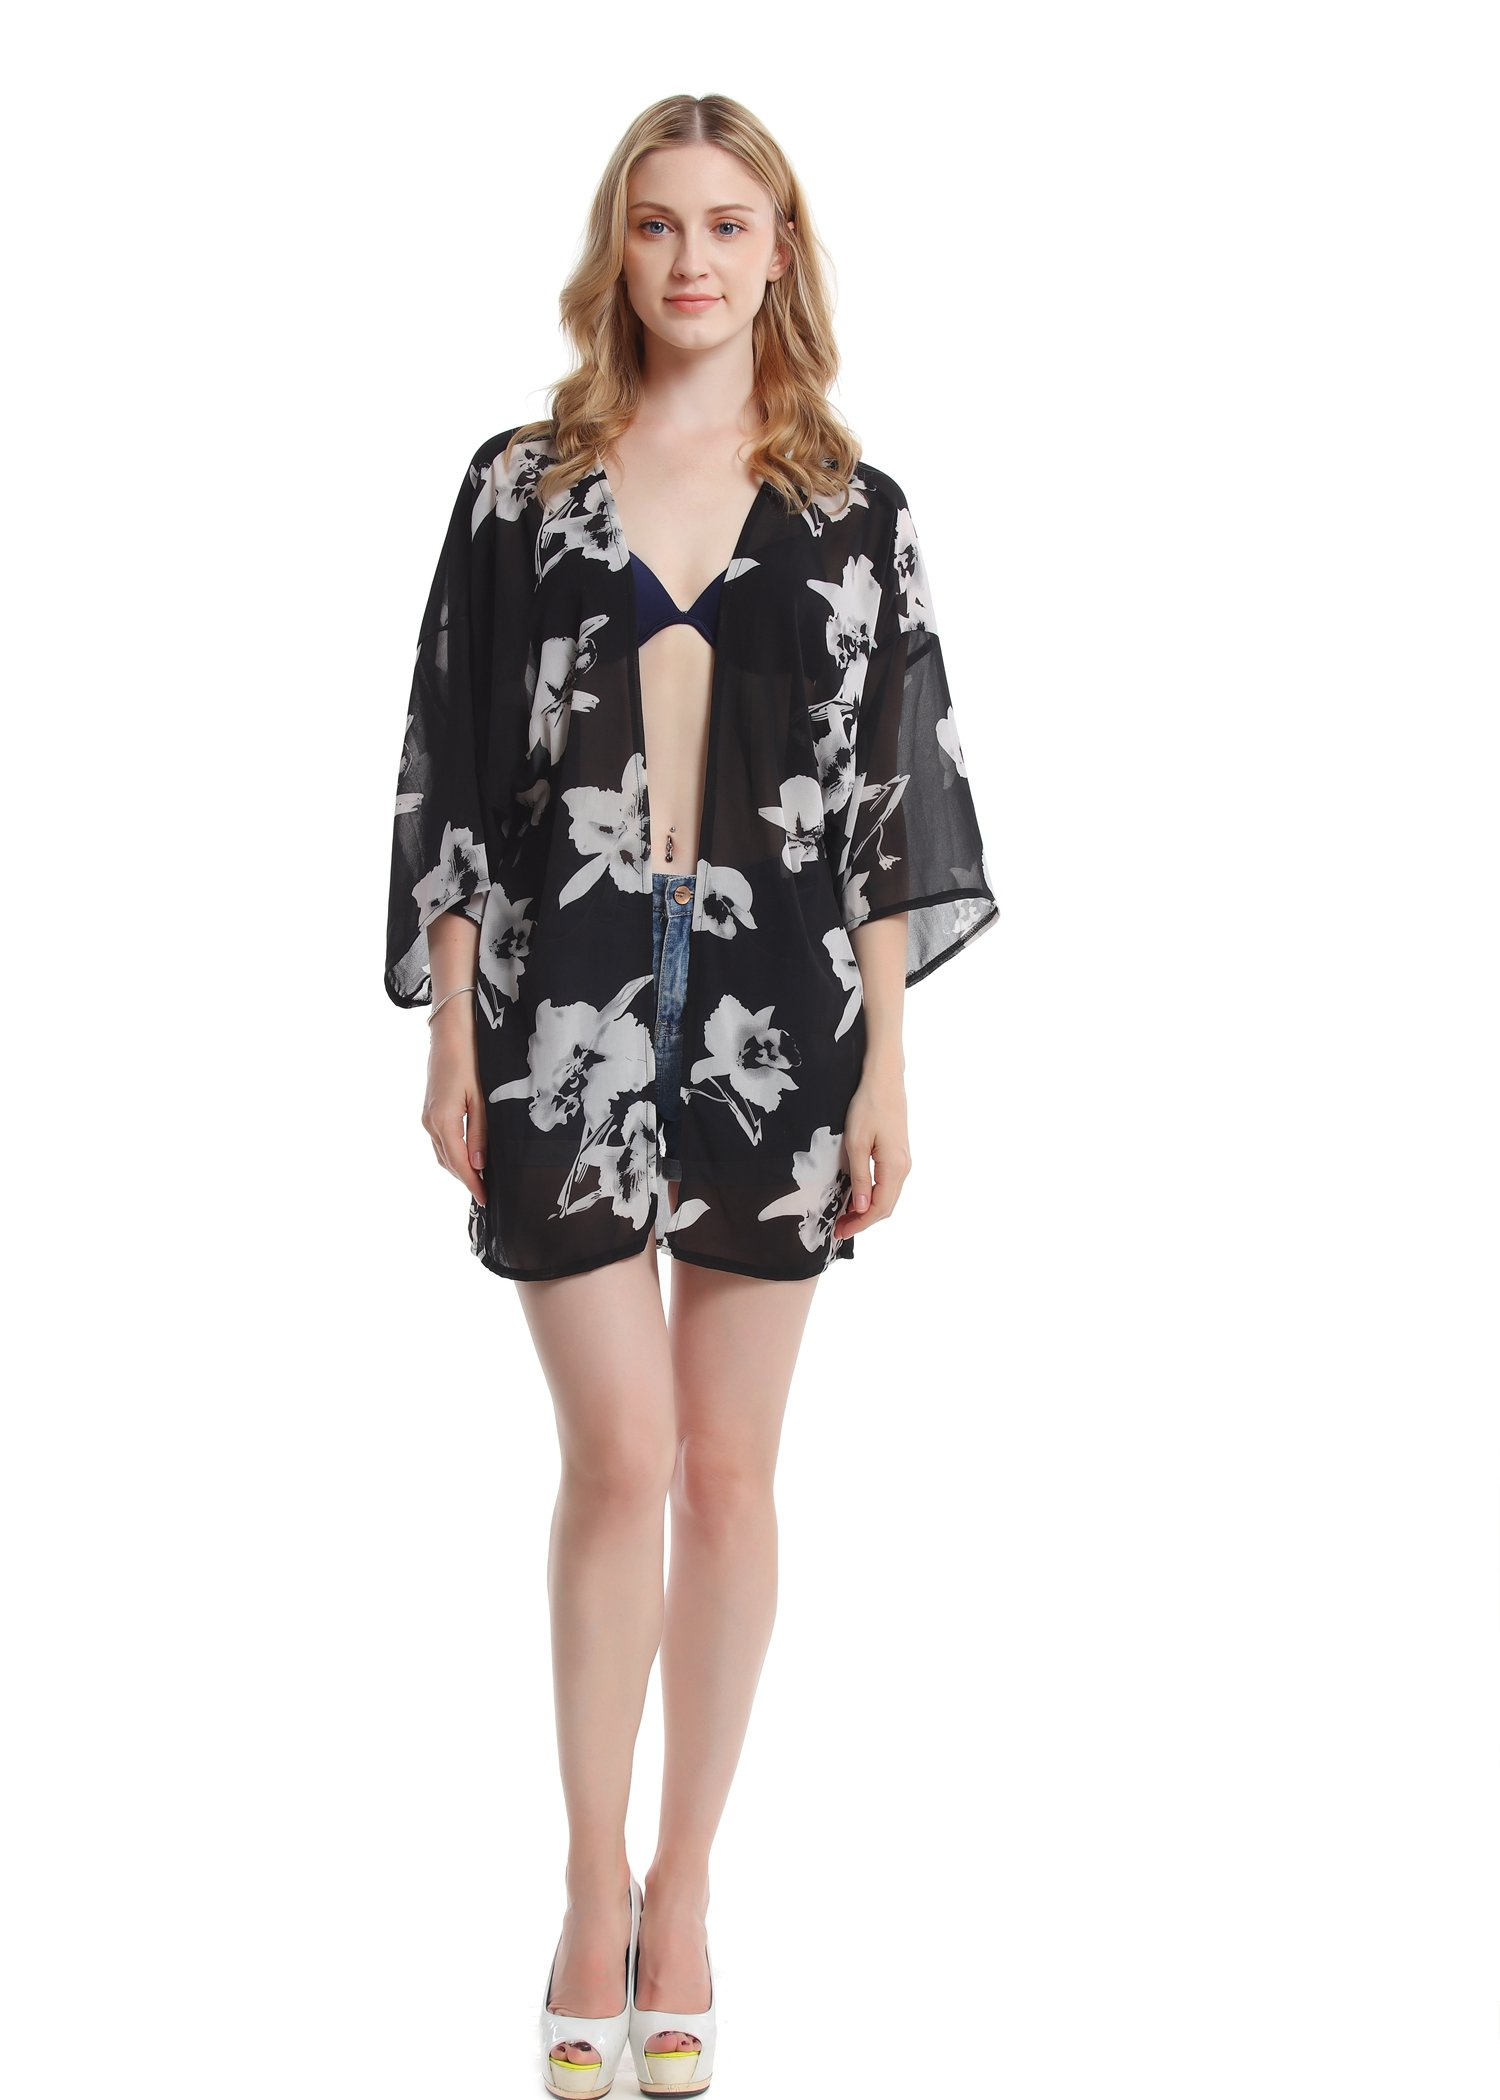 Women's Floral Chiffon Kimono Top - Ladies Sheer Flower 3/4 Sleeves Beach Cover Up for Bikini,Beachwear and Cardigan(Black&White,XL) by soul young (Image #8)